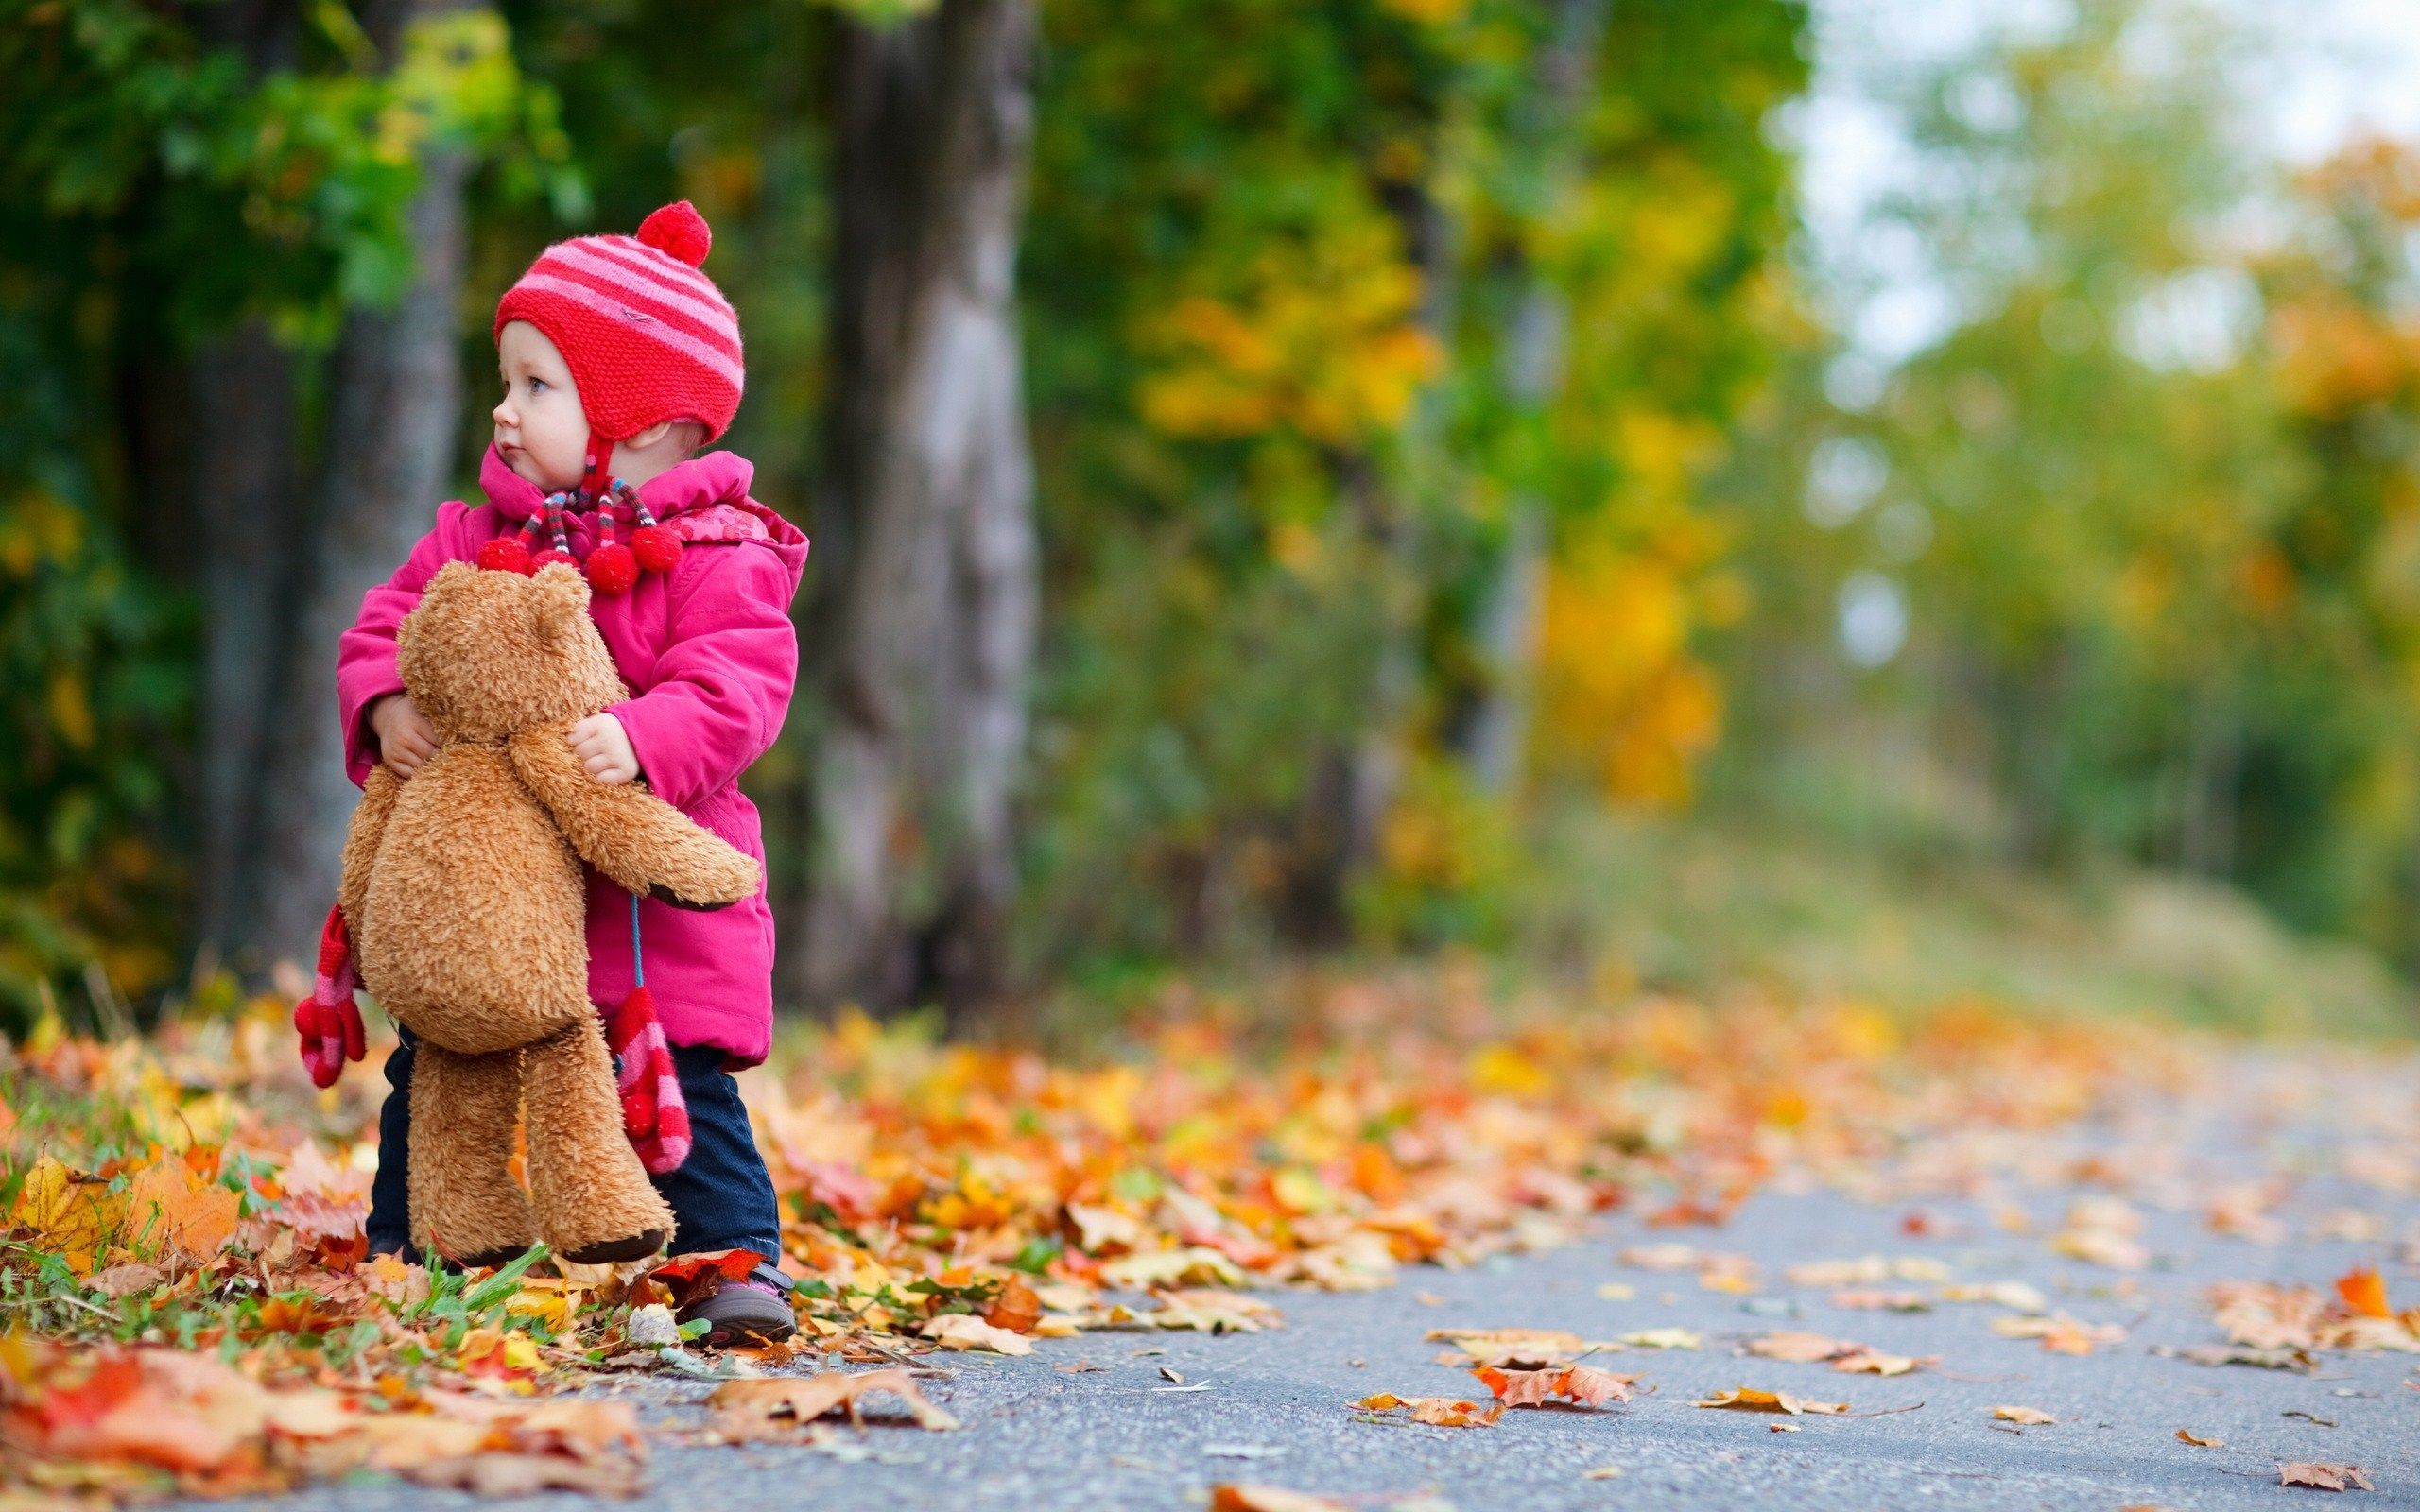 child-girl-bear-toy-autumn-leaves-nature-photo-